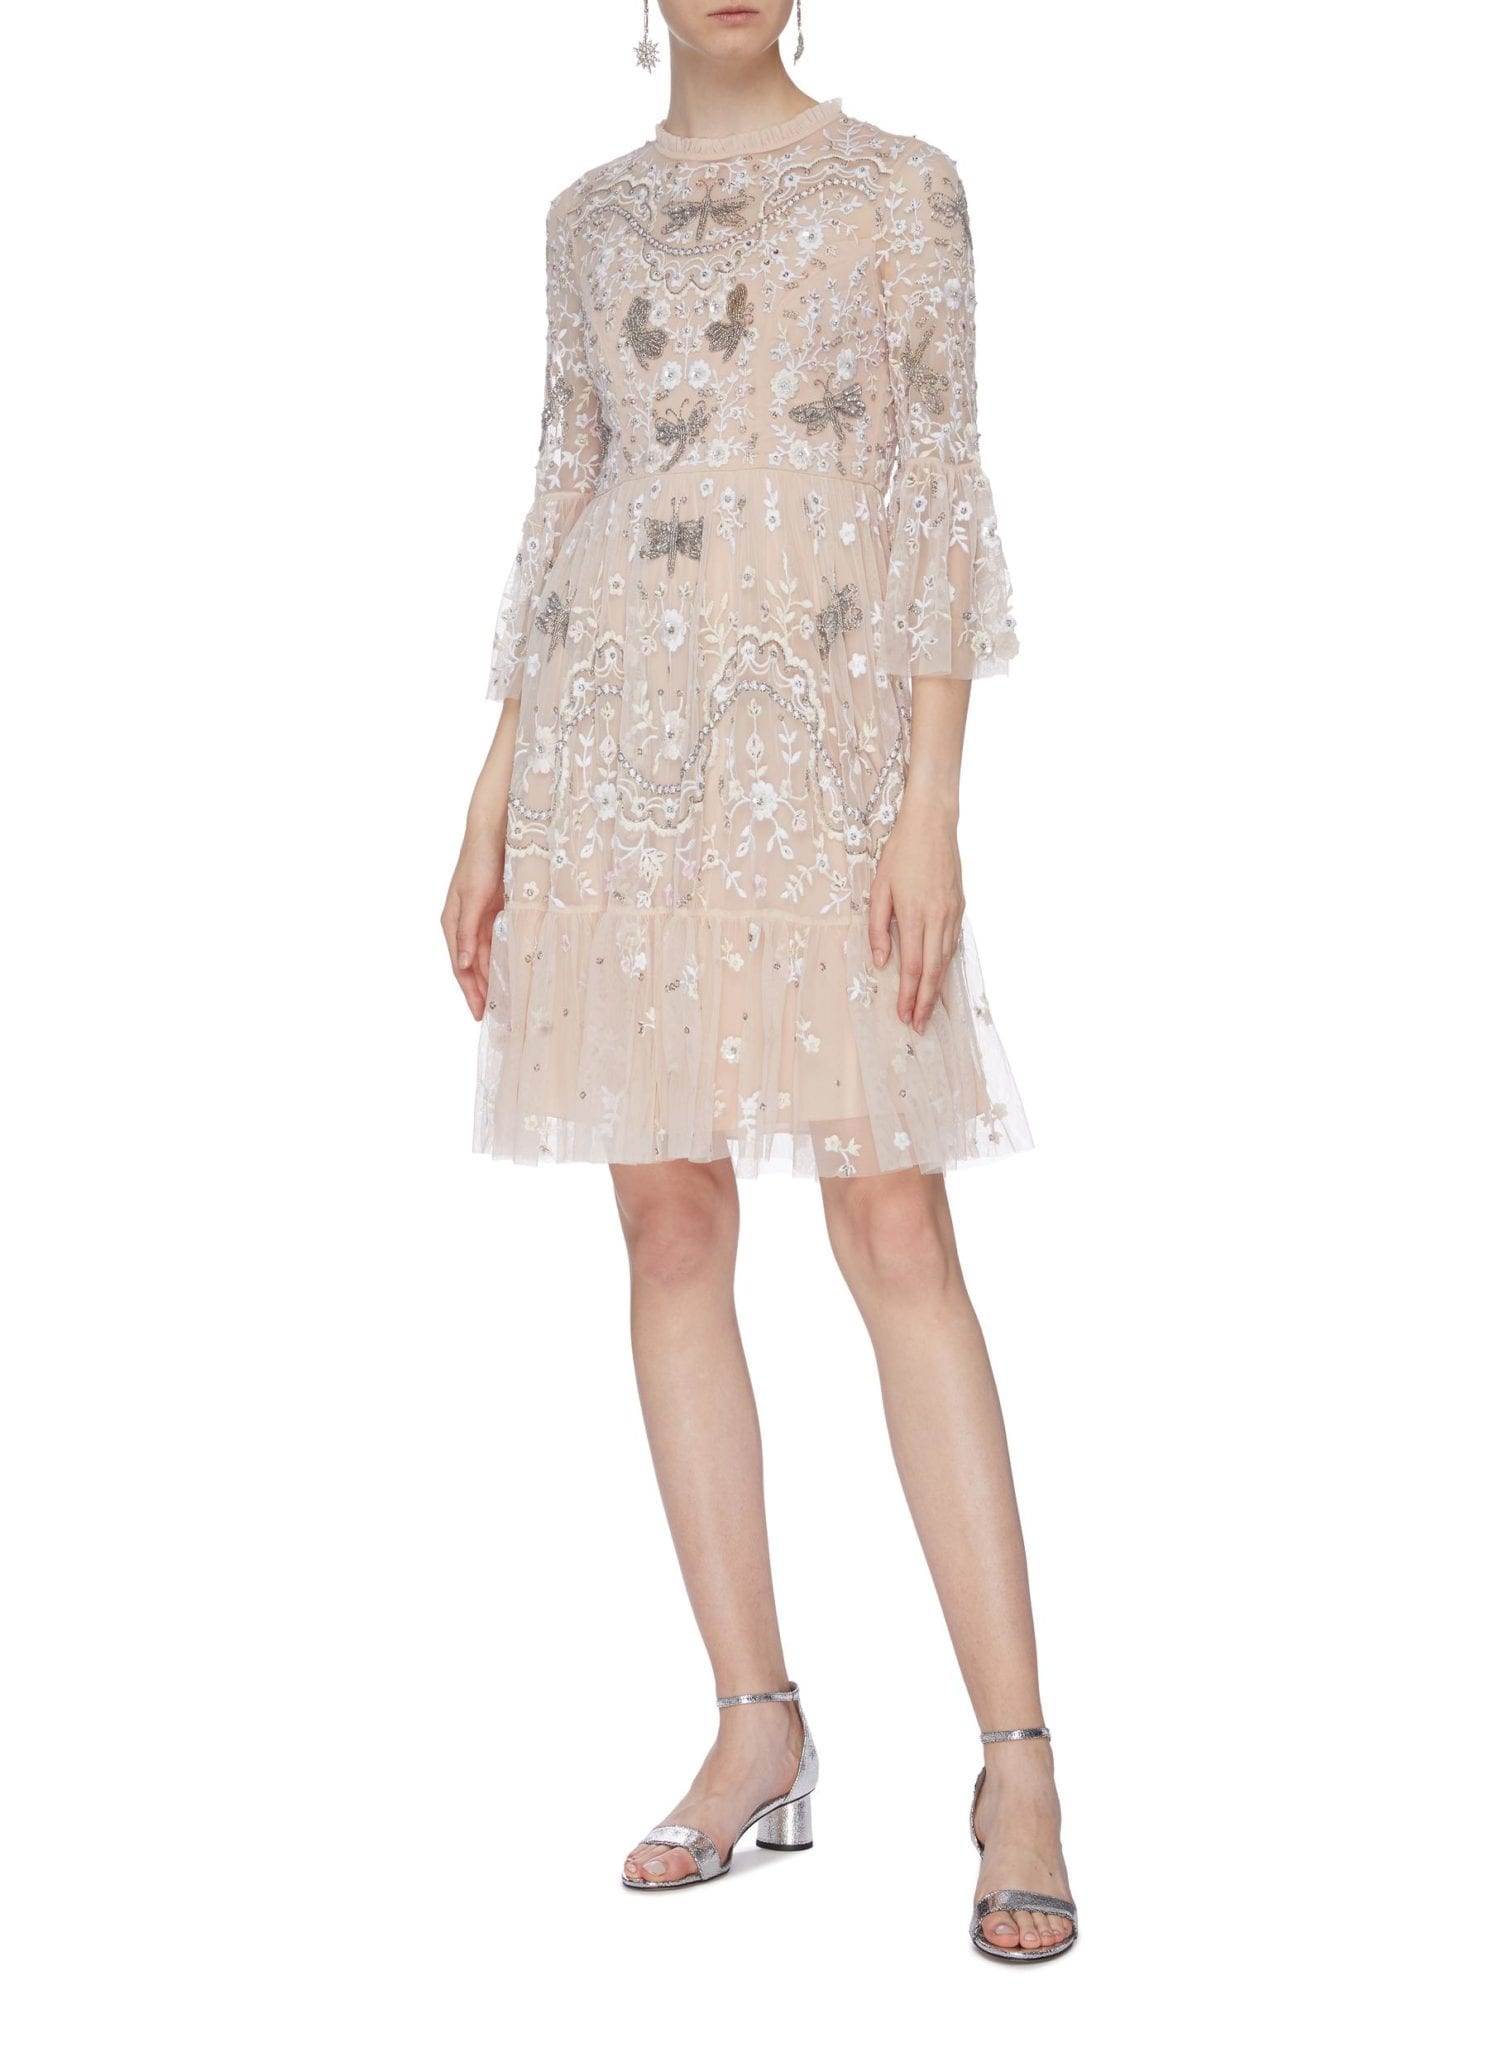 NEEDLE & THREAD 'Dragonfly Garden' Embellished Floral Embroidered Tiered Dress